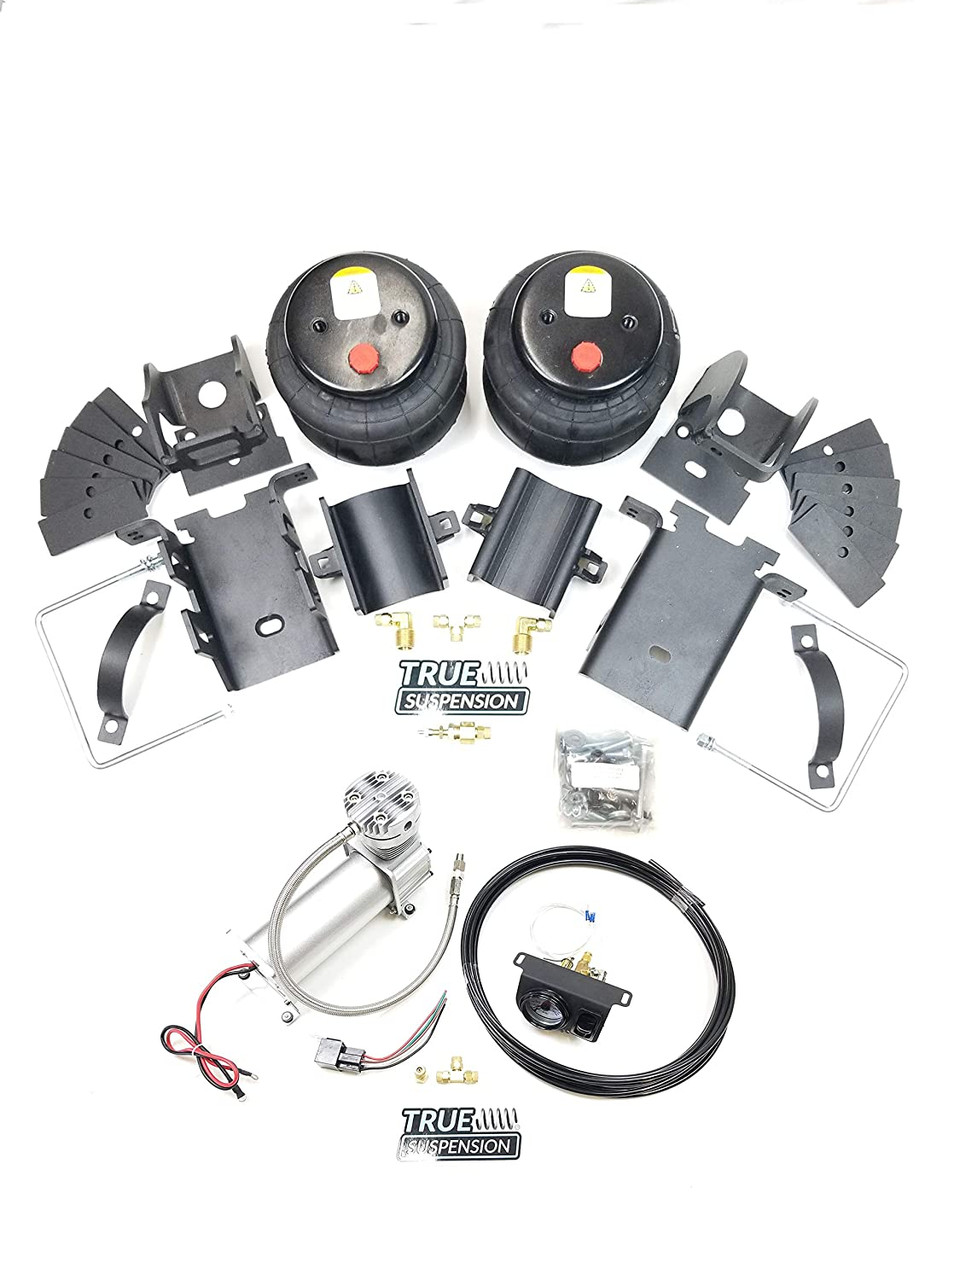 Compatible with Ford F350 Pickup Truck 11-16 Towing Assist Helper Air Ride Suspension with Management Control Kit( No tank) 2WD